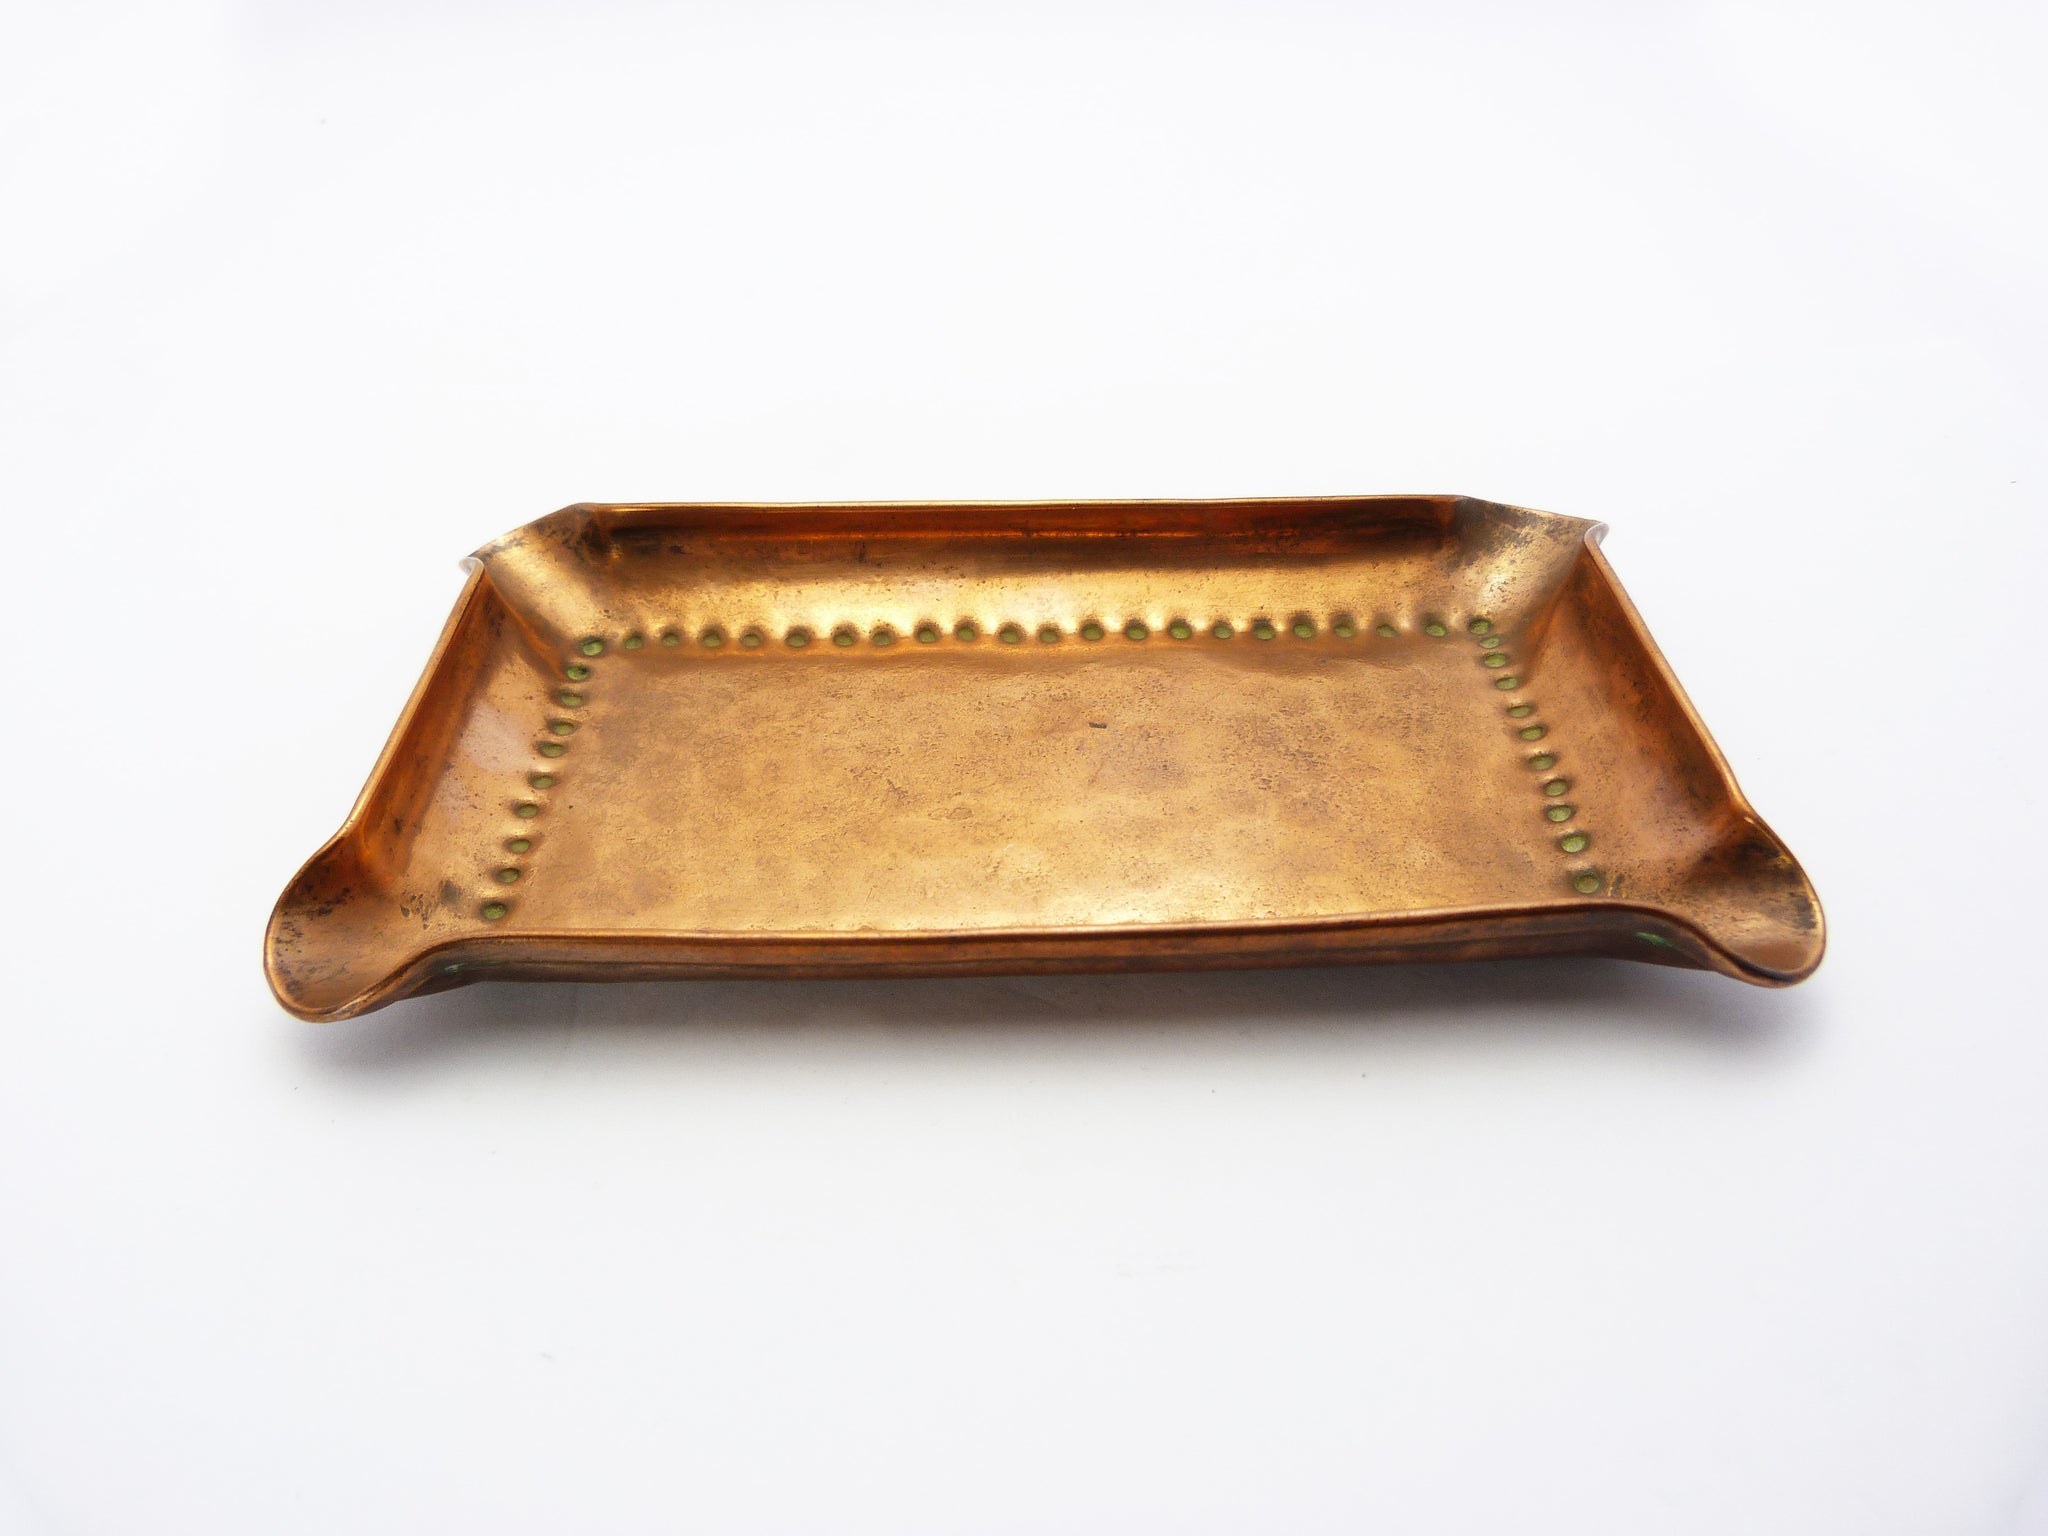 Arts and Crafts Repousse Copper Ashtray - Hand Beaten English Made Olbury